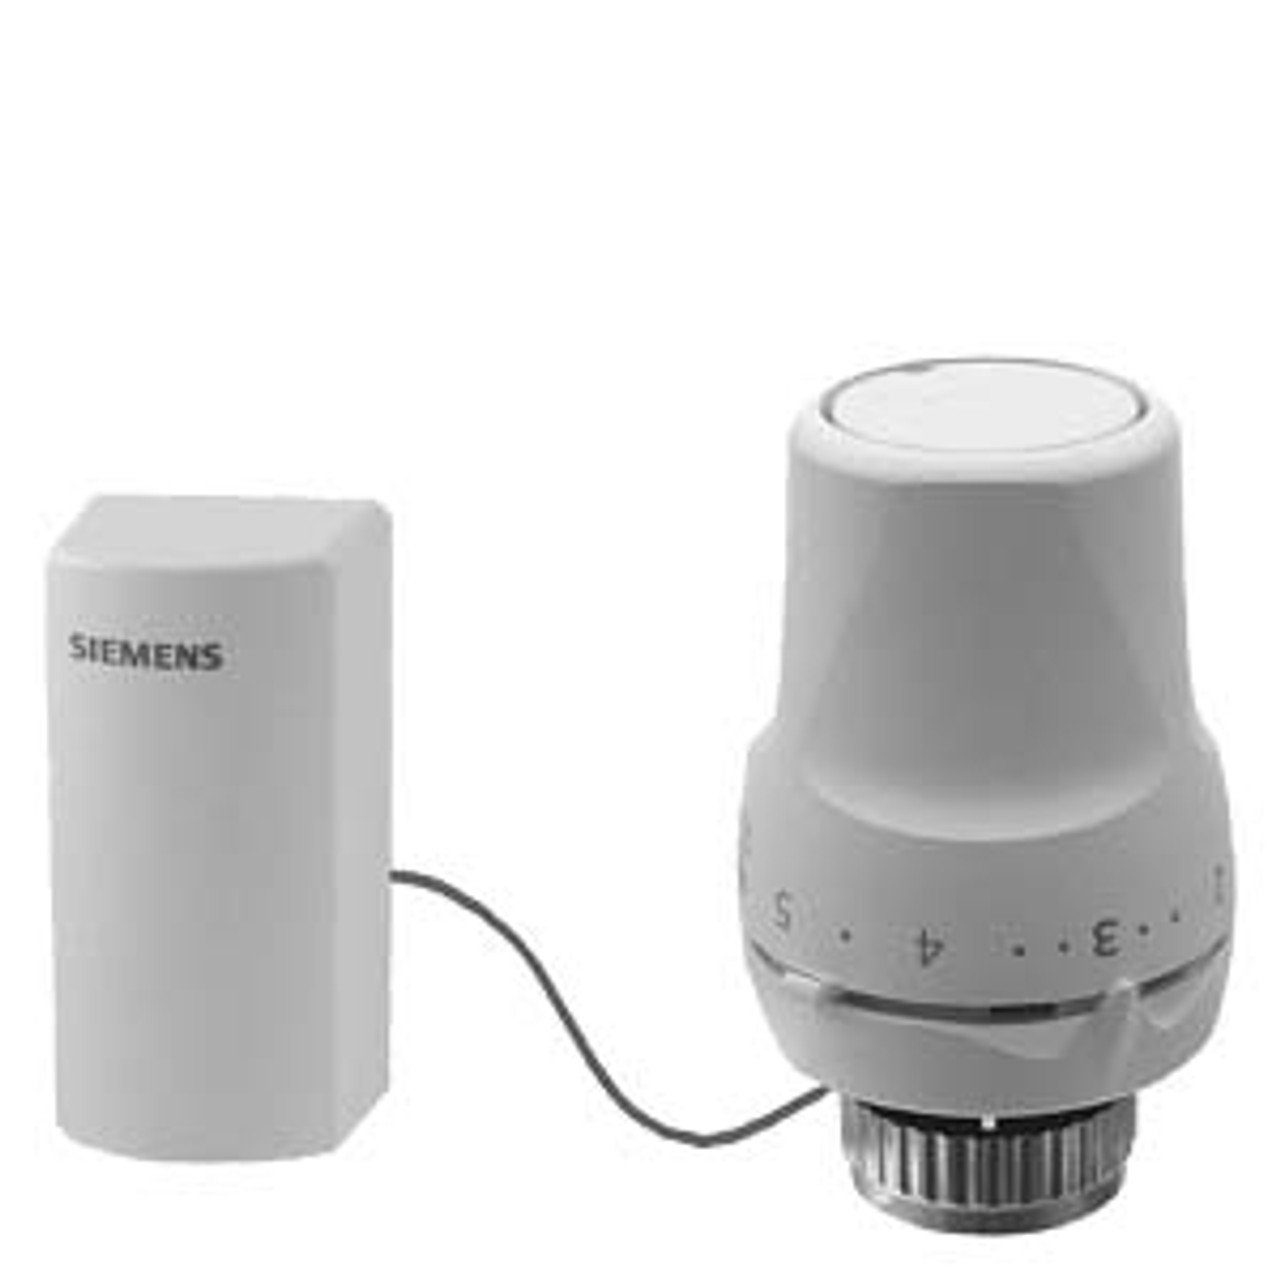 Siemens RTN71 Thermostatic actuator with remote sensor